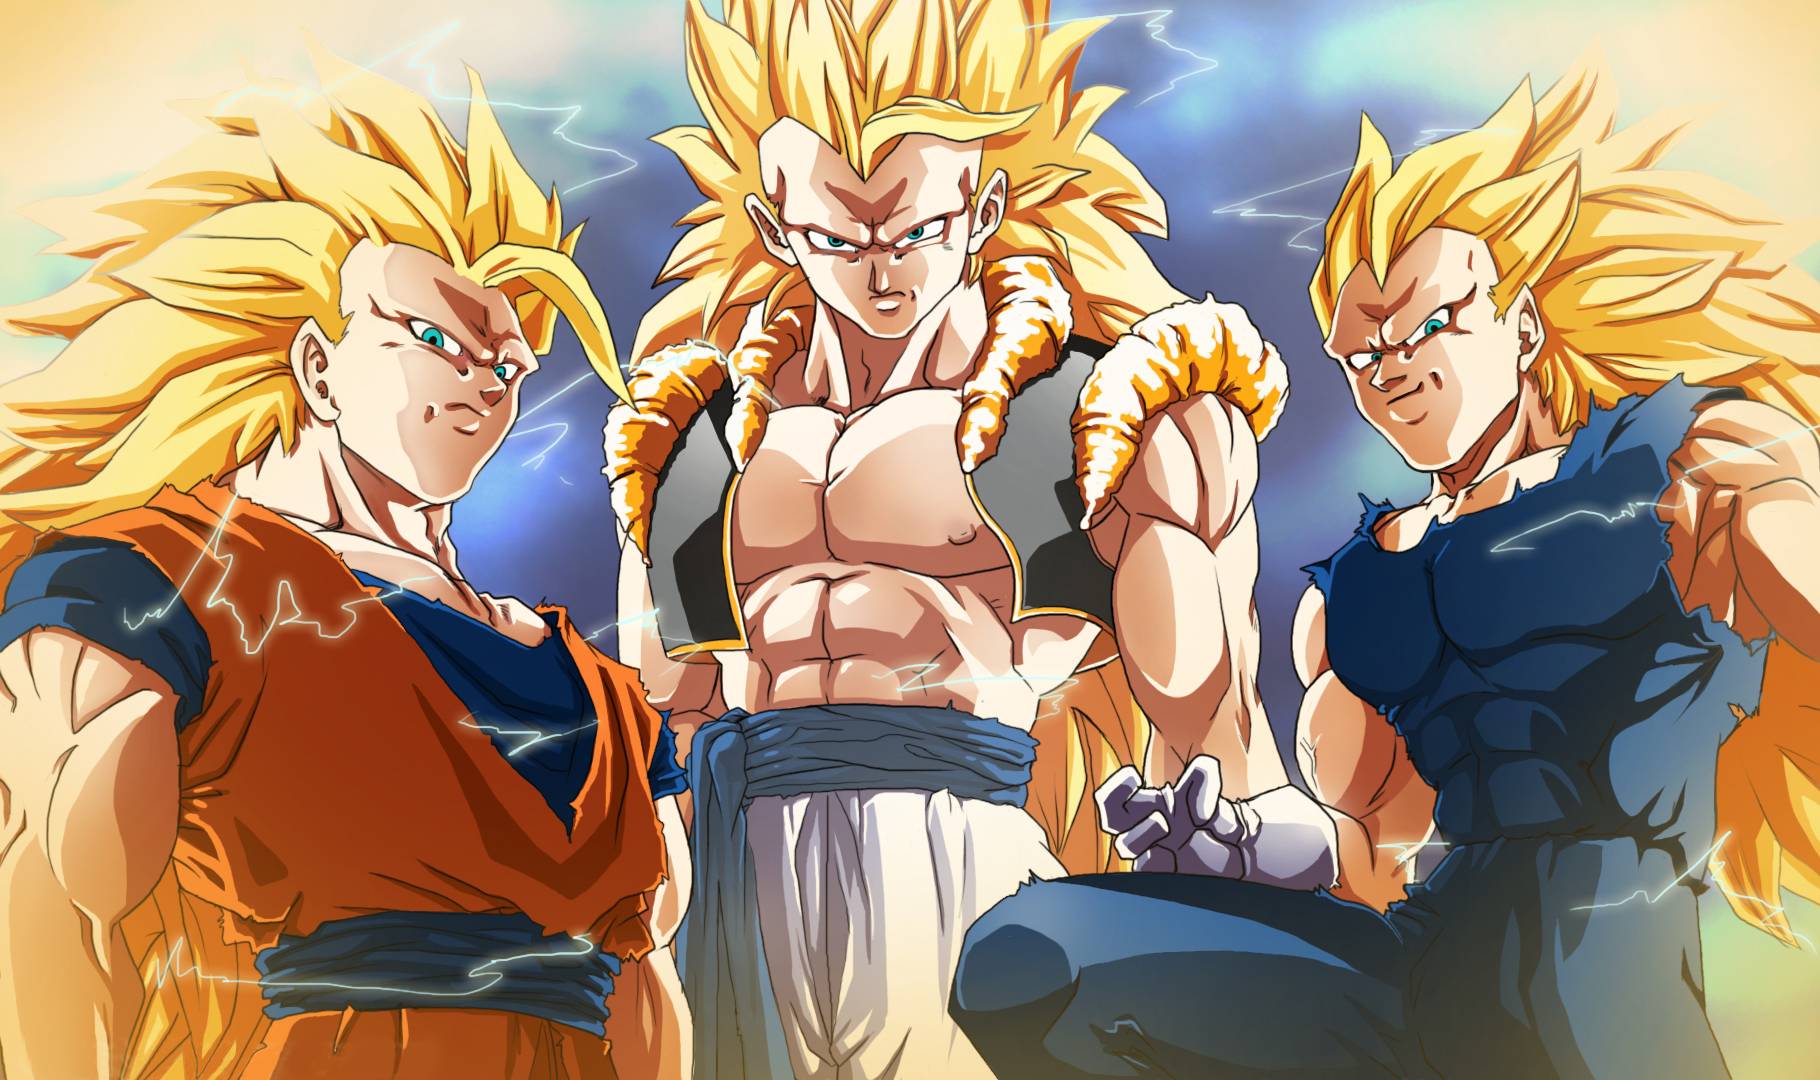 studio behind dragon ball z fan series going after rights to make live action film syfy wire - Dragon Ball Z Com